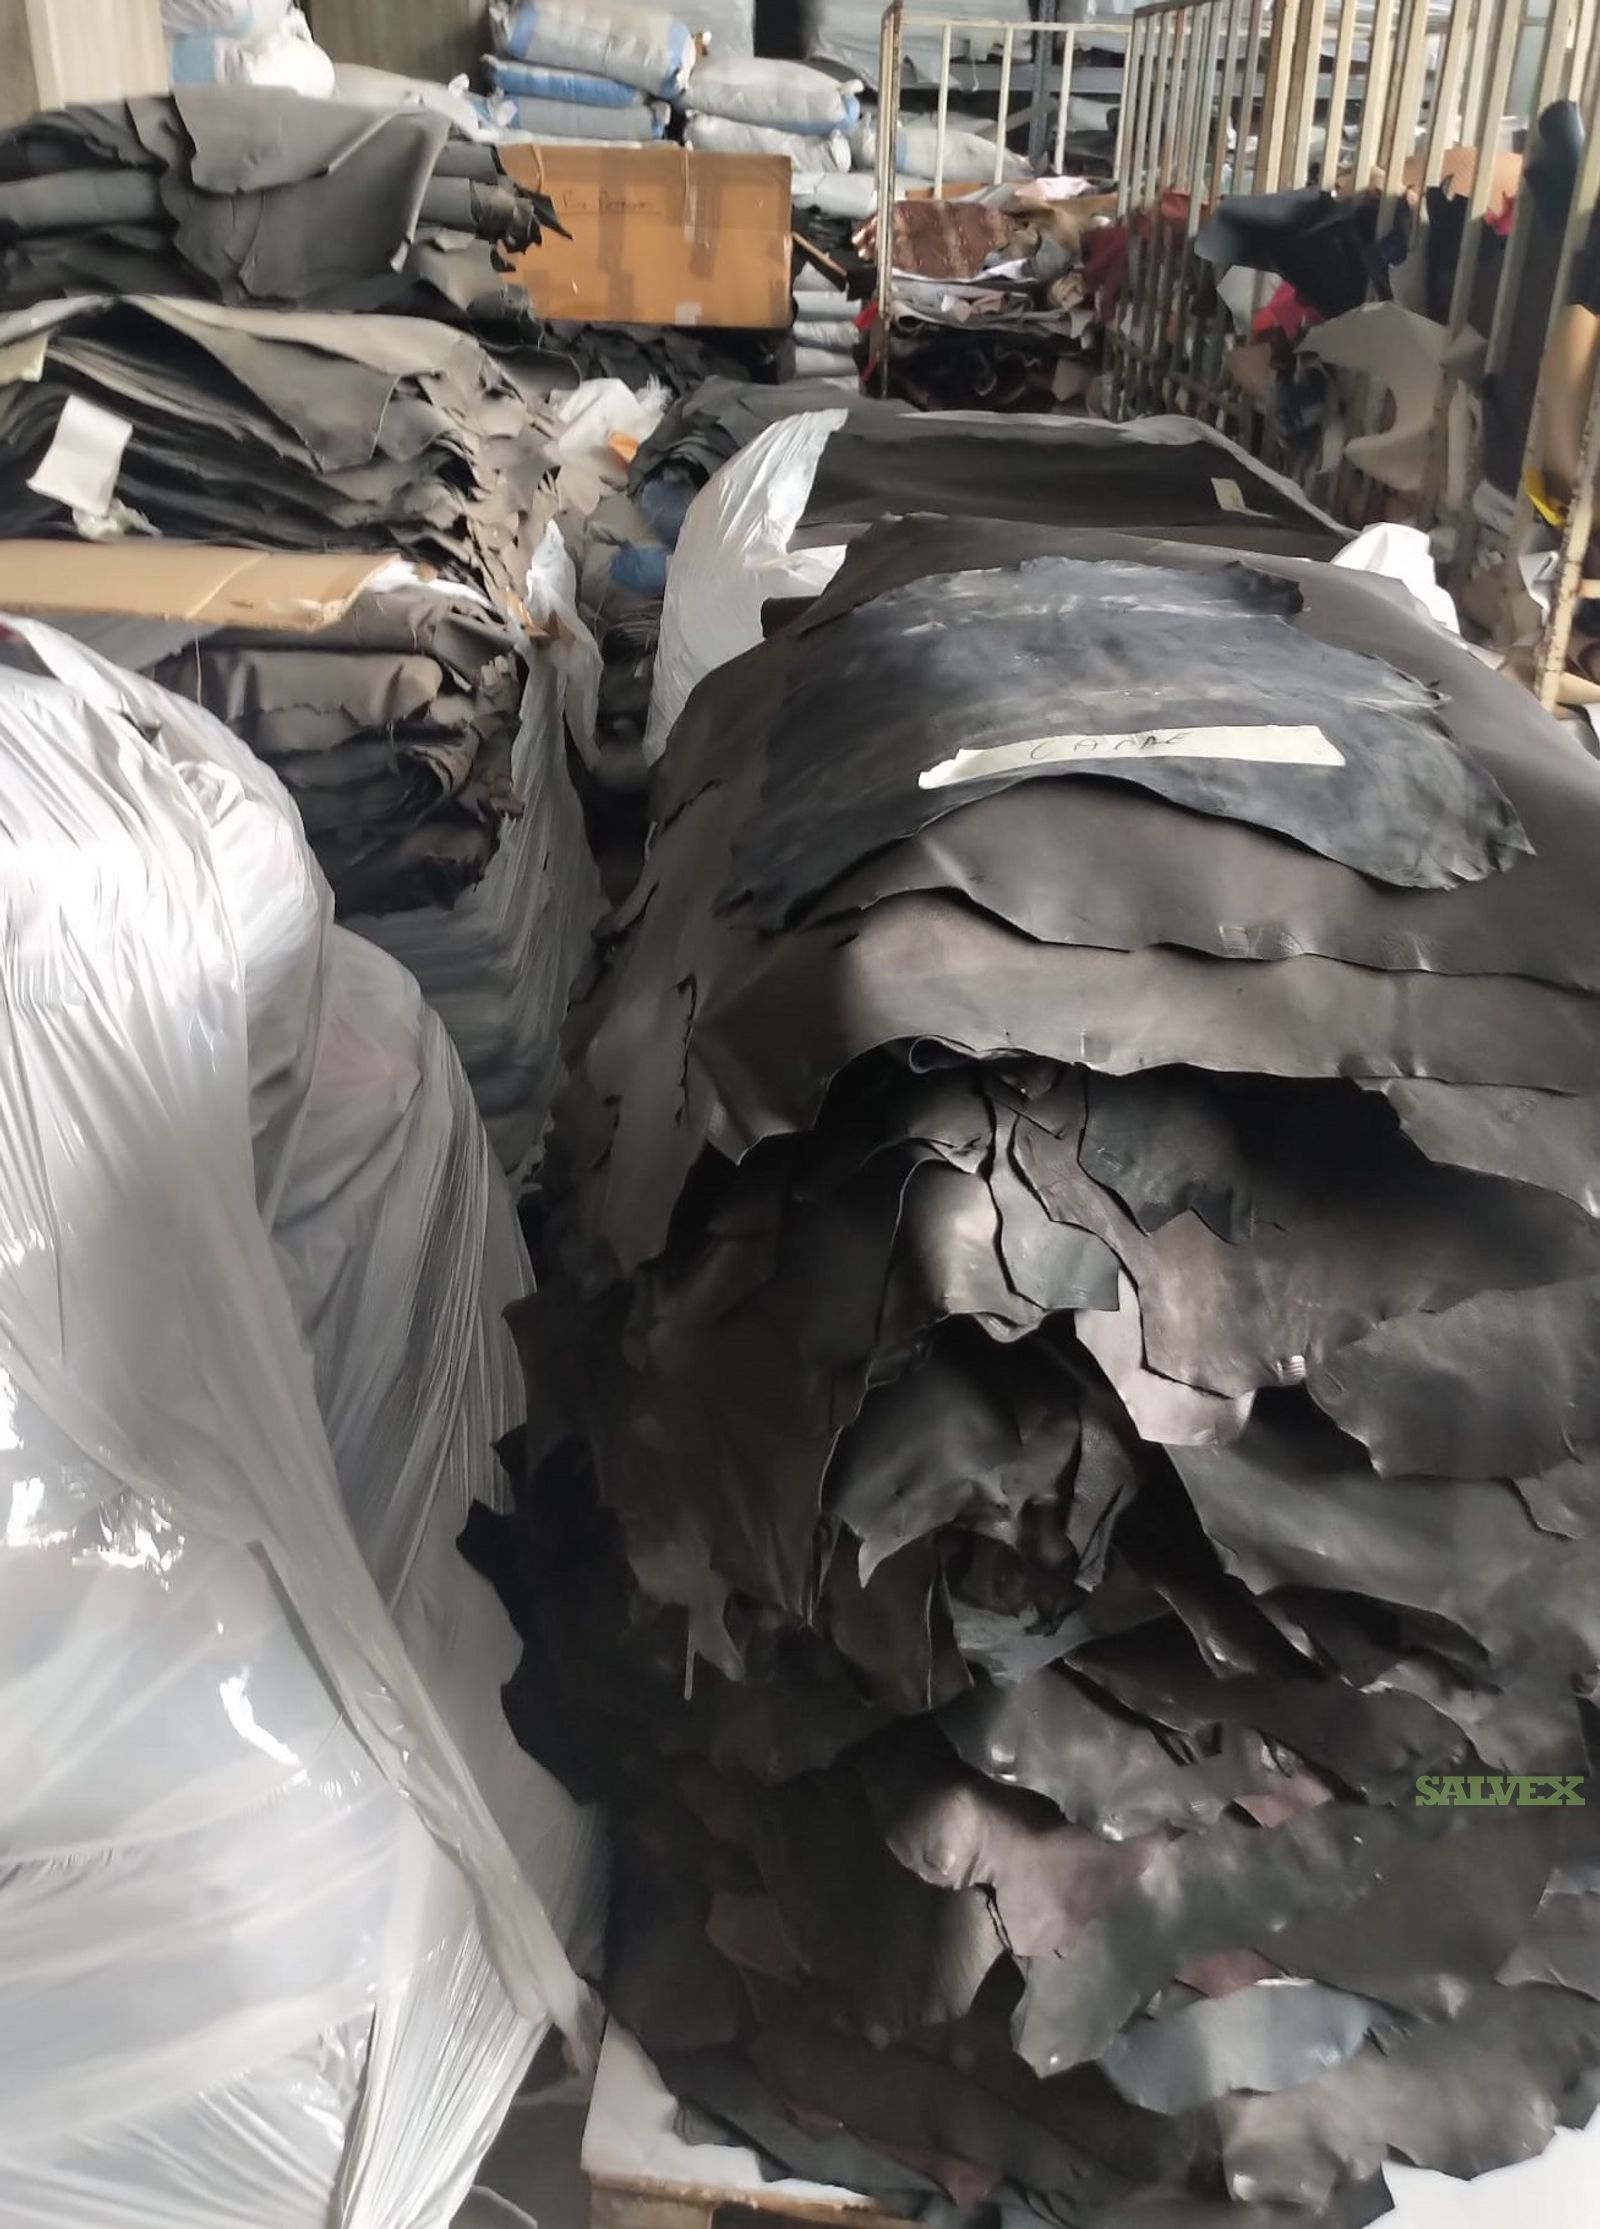 Italian Leather Pieces for Shoe Manufacturing (Approx. 20,000 Kgs)